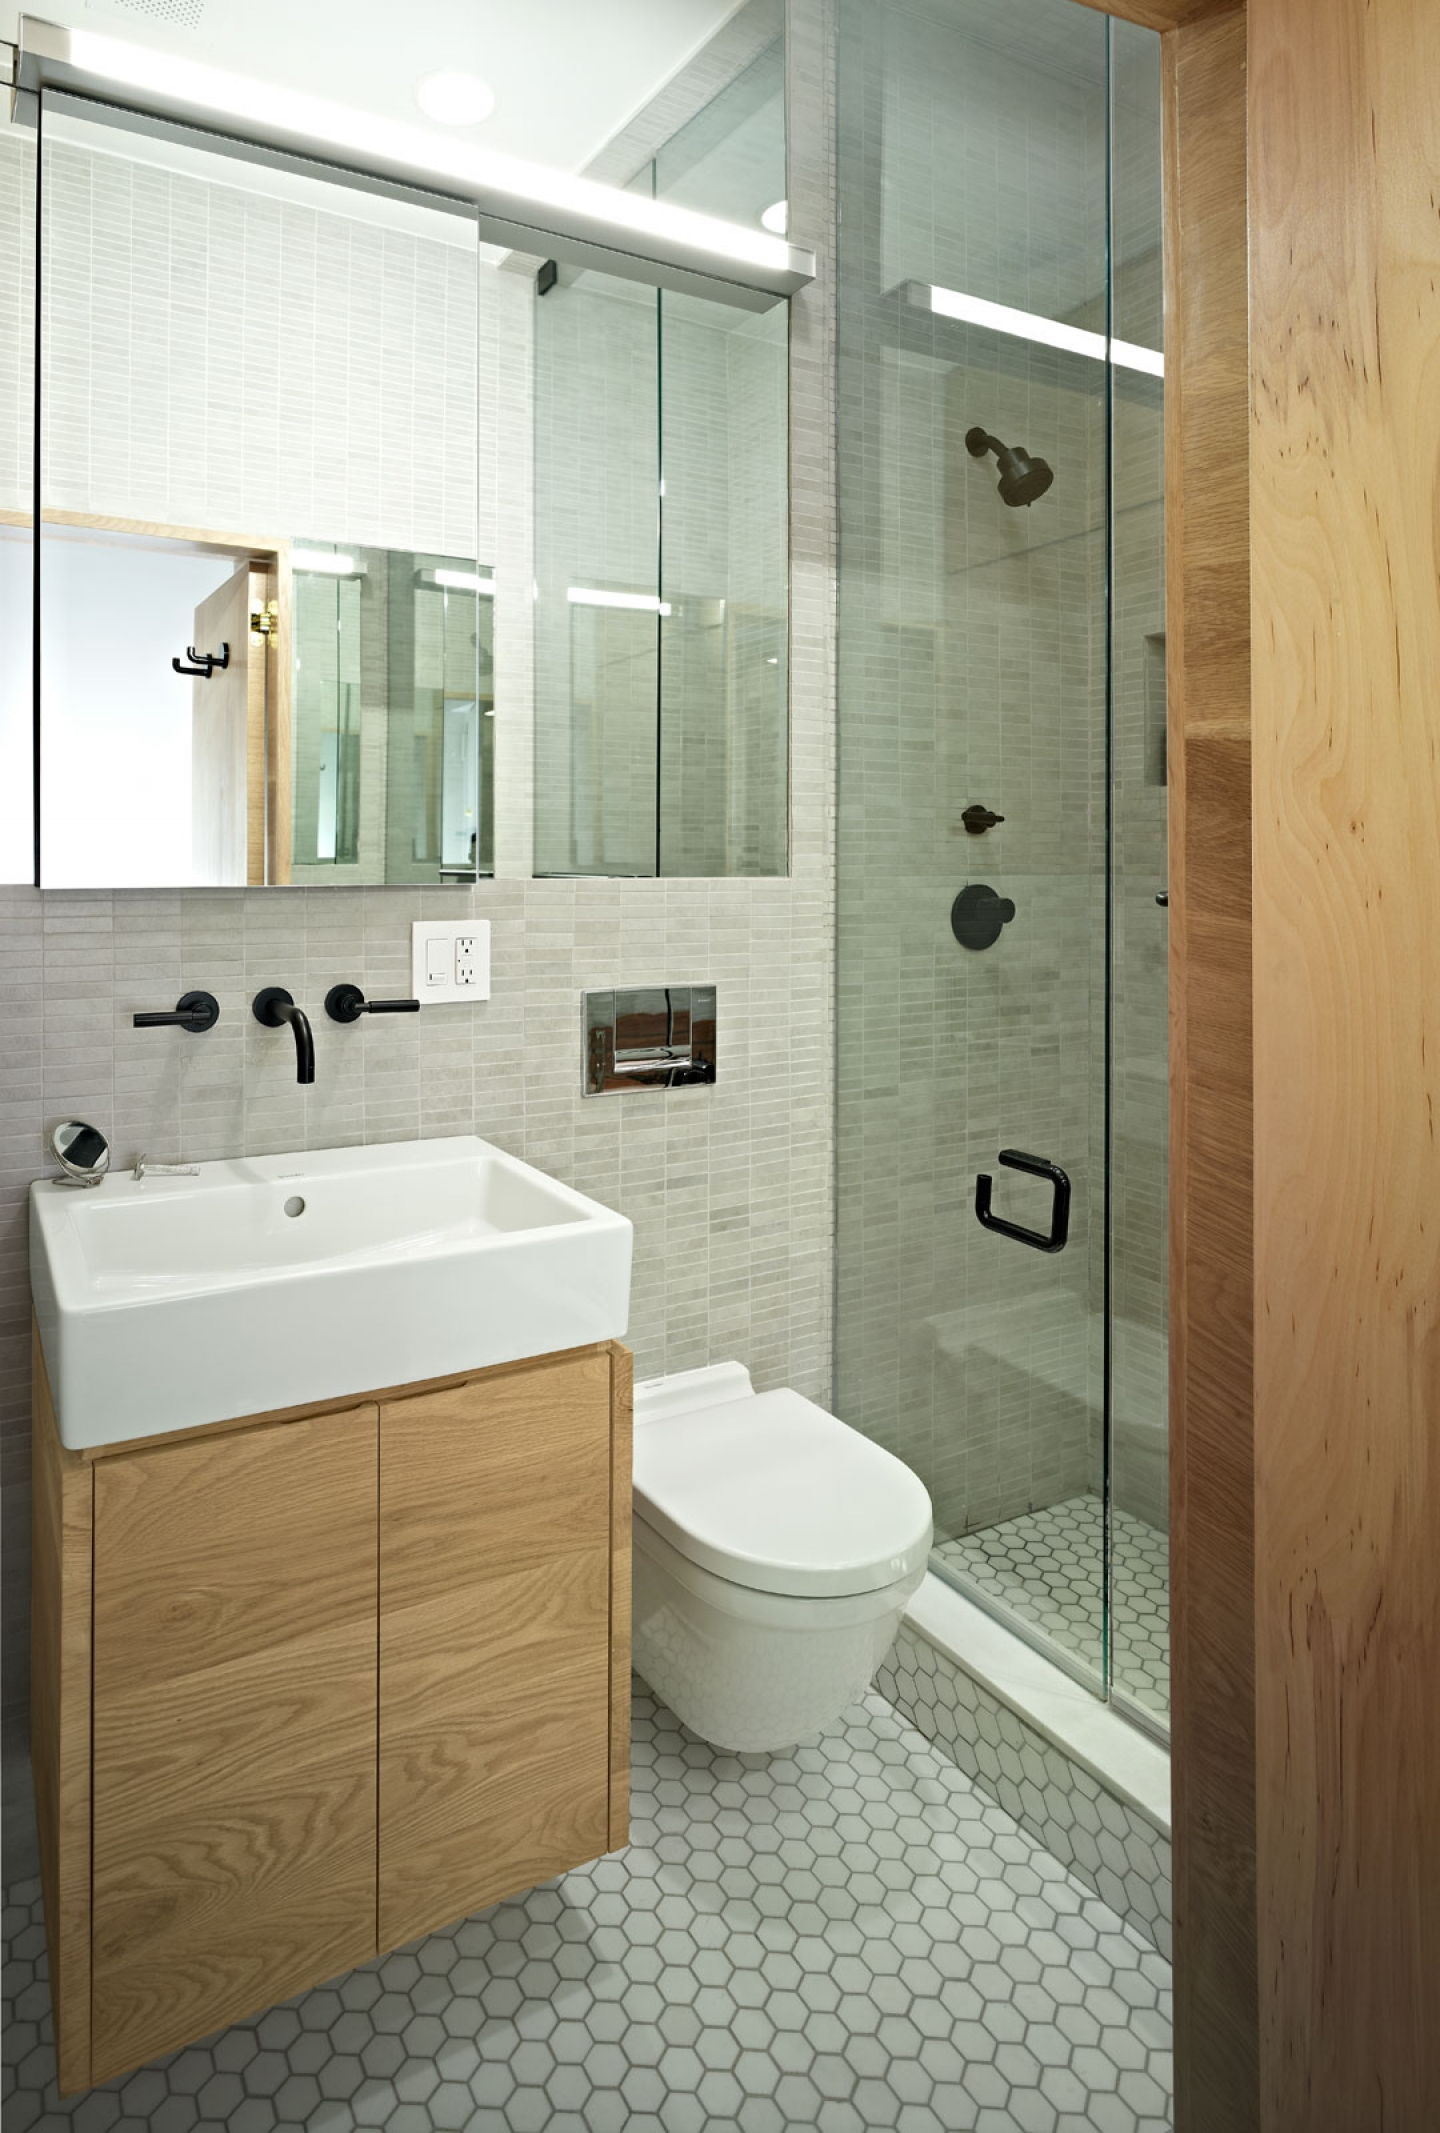 Wooden Cabinet For Small Bathroom Ideas (Image 10 of 10)